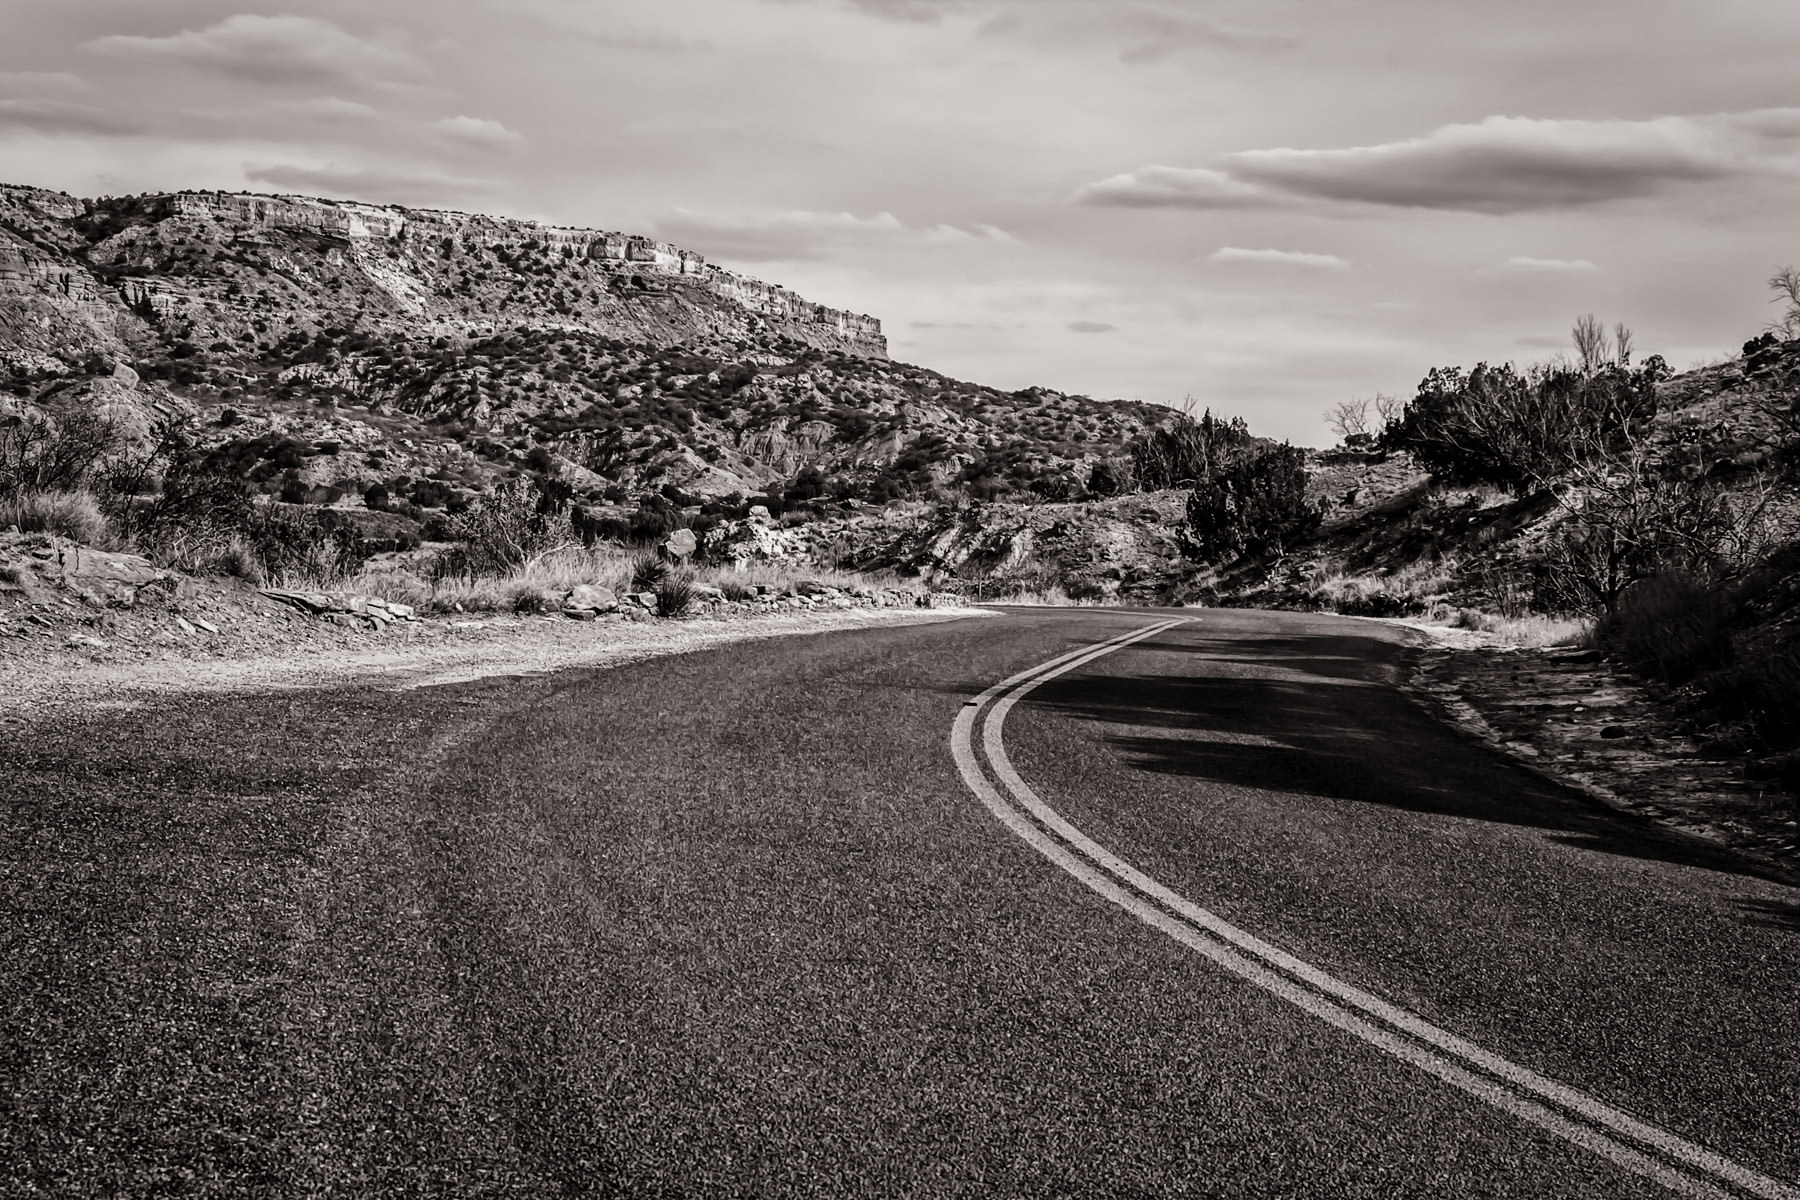 A two-lane park road winds through Palo Duro Canyon, Texas.